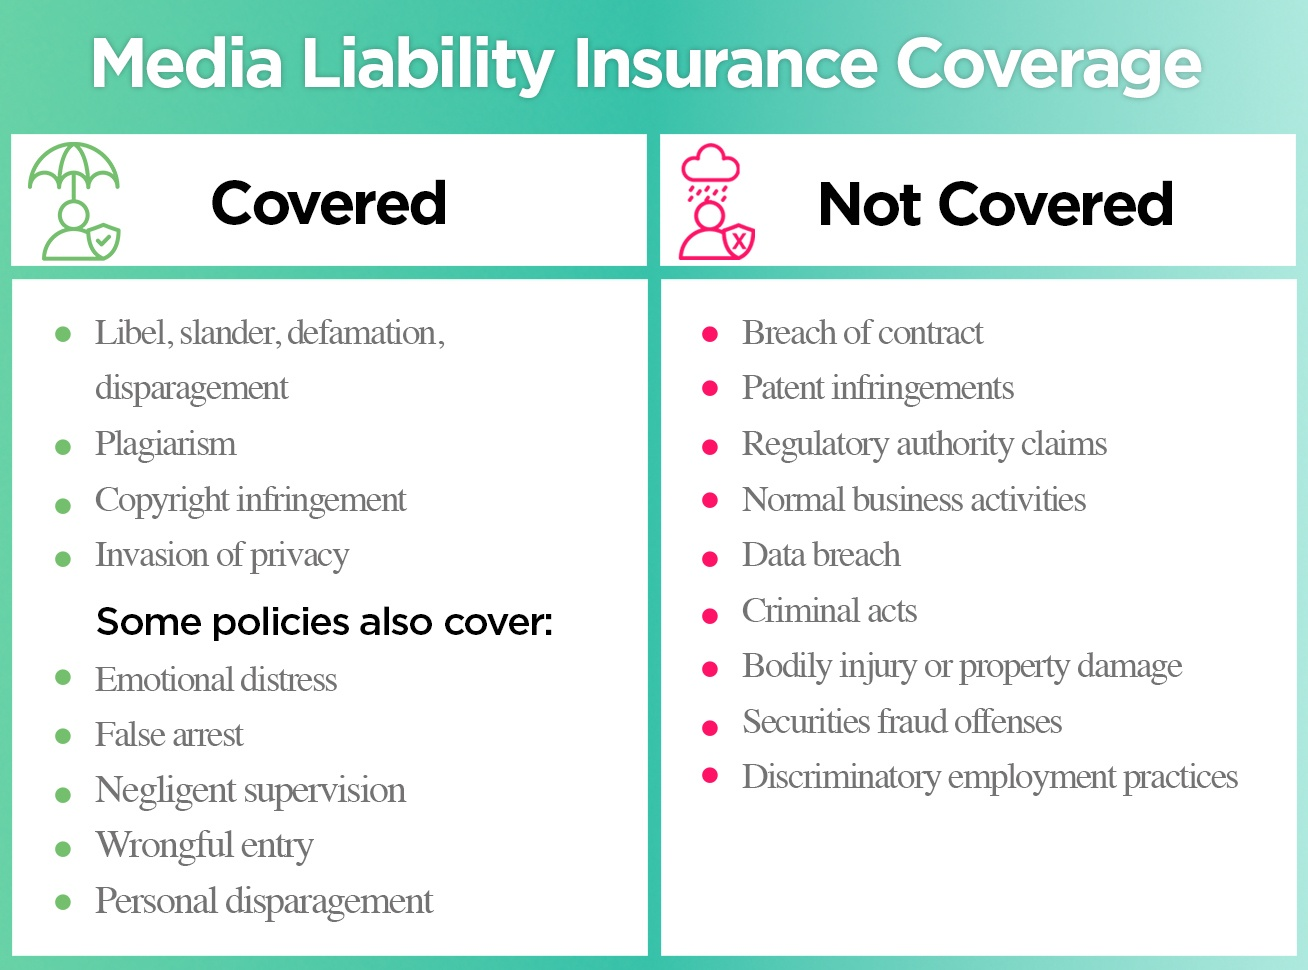 What does media insurance liability cover?